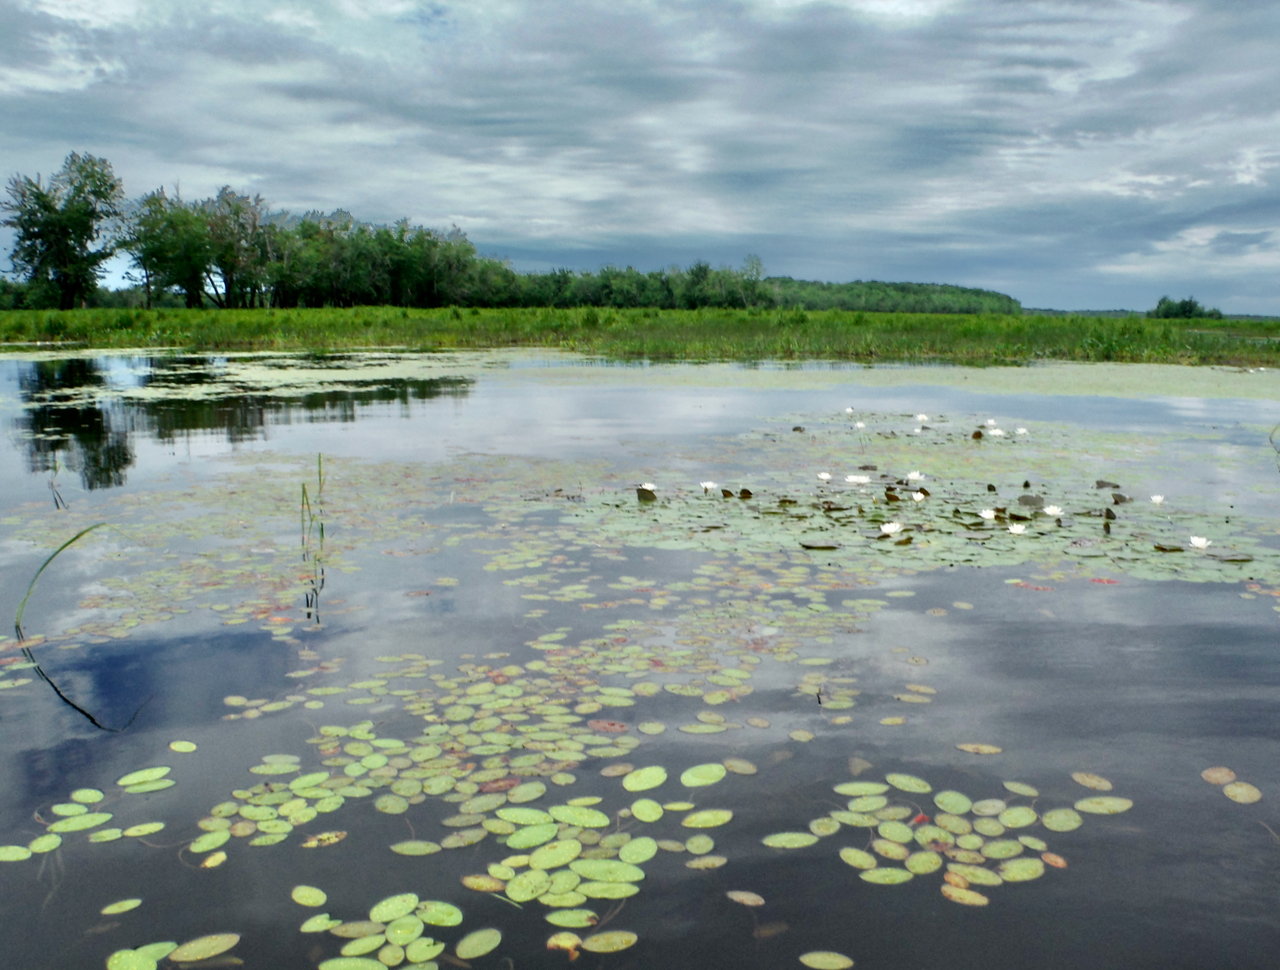 The Saint John river floodplain is one of the few largely intact large river floodplains on either side of the Atlantic Ocean, and is an area rich in biodiversity. (Photo: Natalie Rideout).